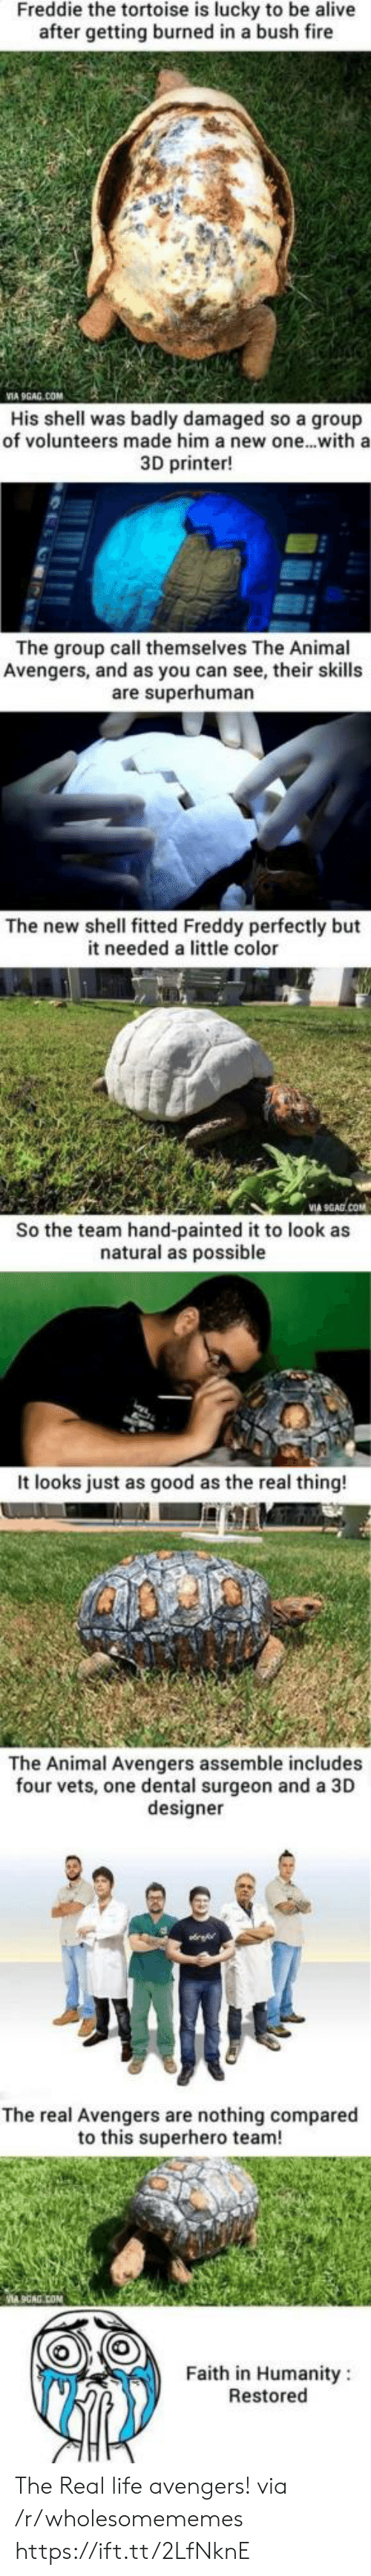 Humanity Restored: Freddie the tortoise is lucky to be alive  after getting burned in a bush fire  VIA 9GAG.COM  His shell was badly damaged so a group  of volunteers made him a new one...with a  3D printer!  The group call themselves The Animal  Avengers, and as you can see, their skills  are superhuman  The new shell fitted Freddy perfectly but  it needed a little color  So the team hand-painted it to look as  natural as possible  It looks just as good as the real thing!  The Animal Avengers assemble includes  four vets, one dental surgeon and a 3D  designer  The real Avengers are nothing compared  to this superhero team!  Faith in Humanity  Restored The Real life avengers! via /r/wholesomememes https://ift.tt/2LfNknE